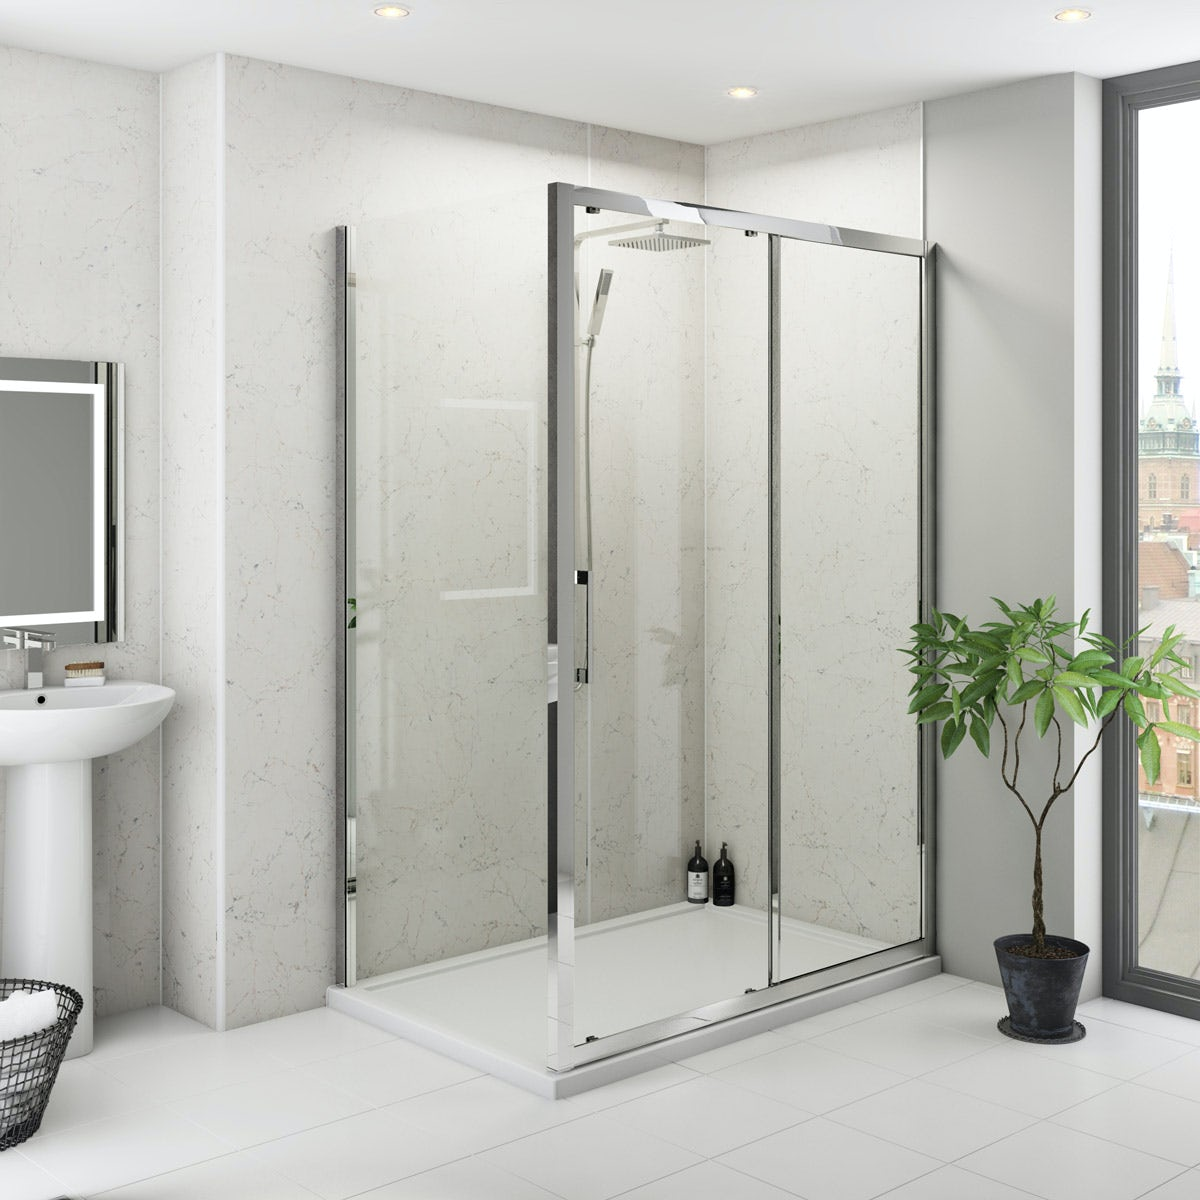 Multipanel Classic Marble unlipped shower wall panel 2400 x 1200